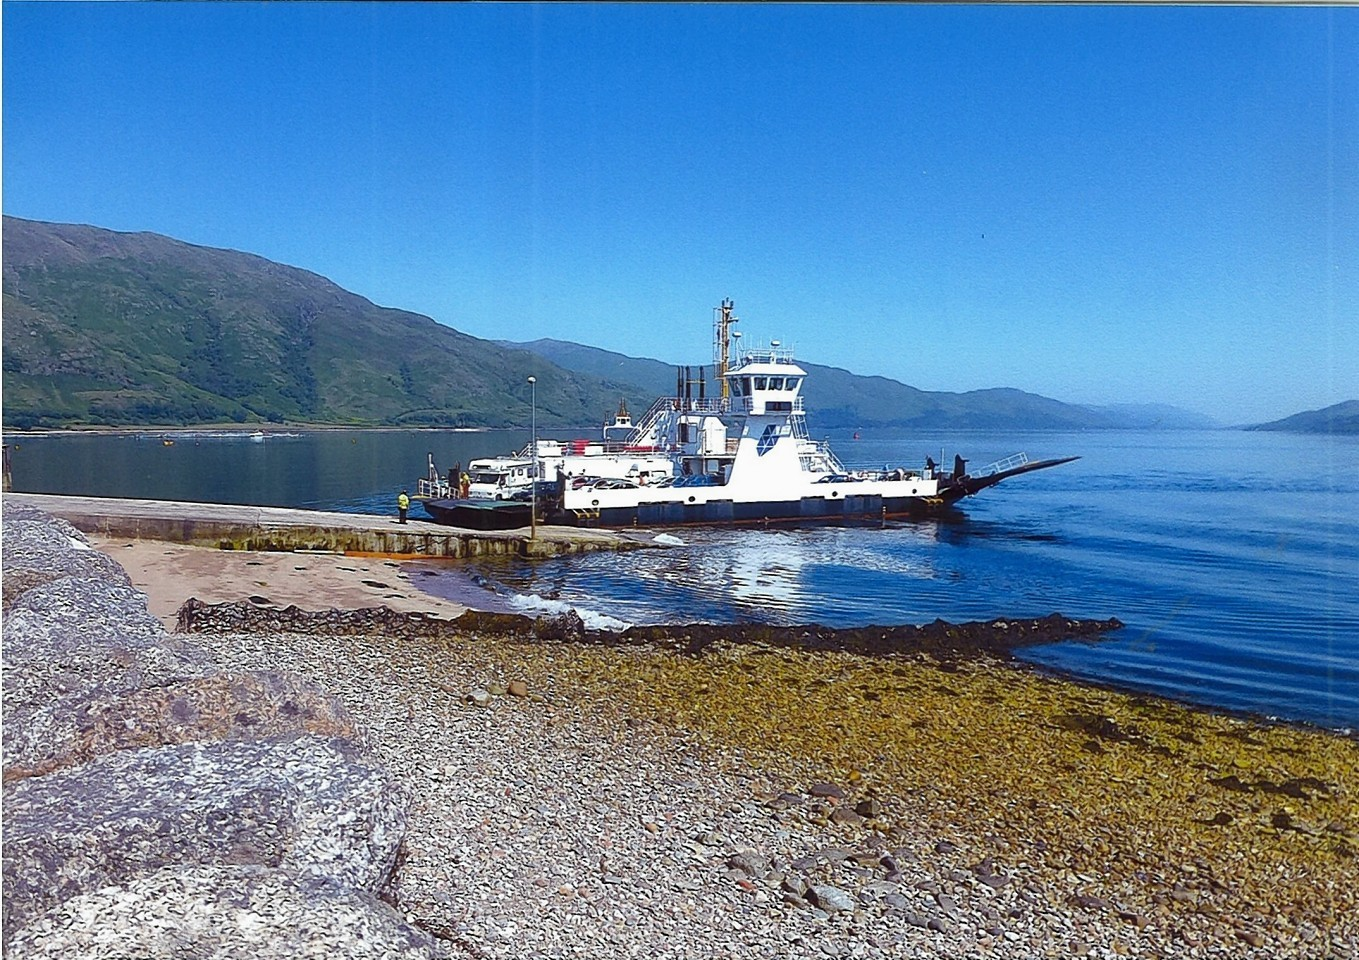 The route will take people to the popular Corran Ferry terminal in Nether Lochaber